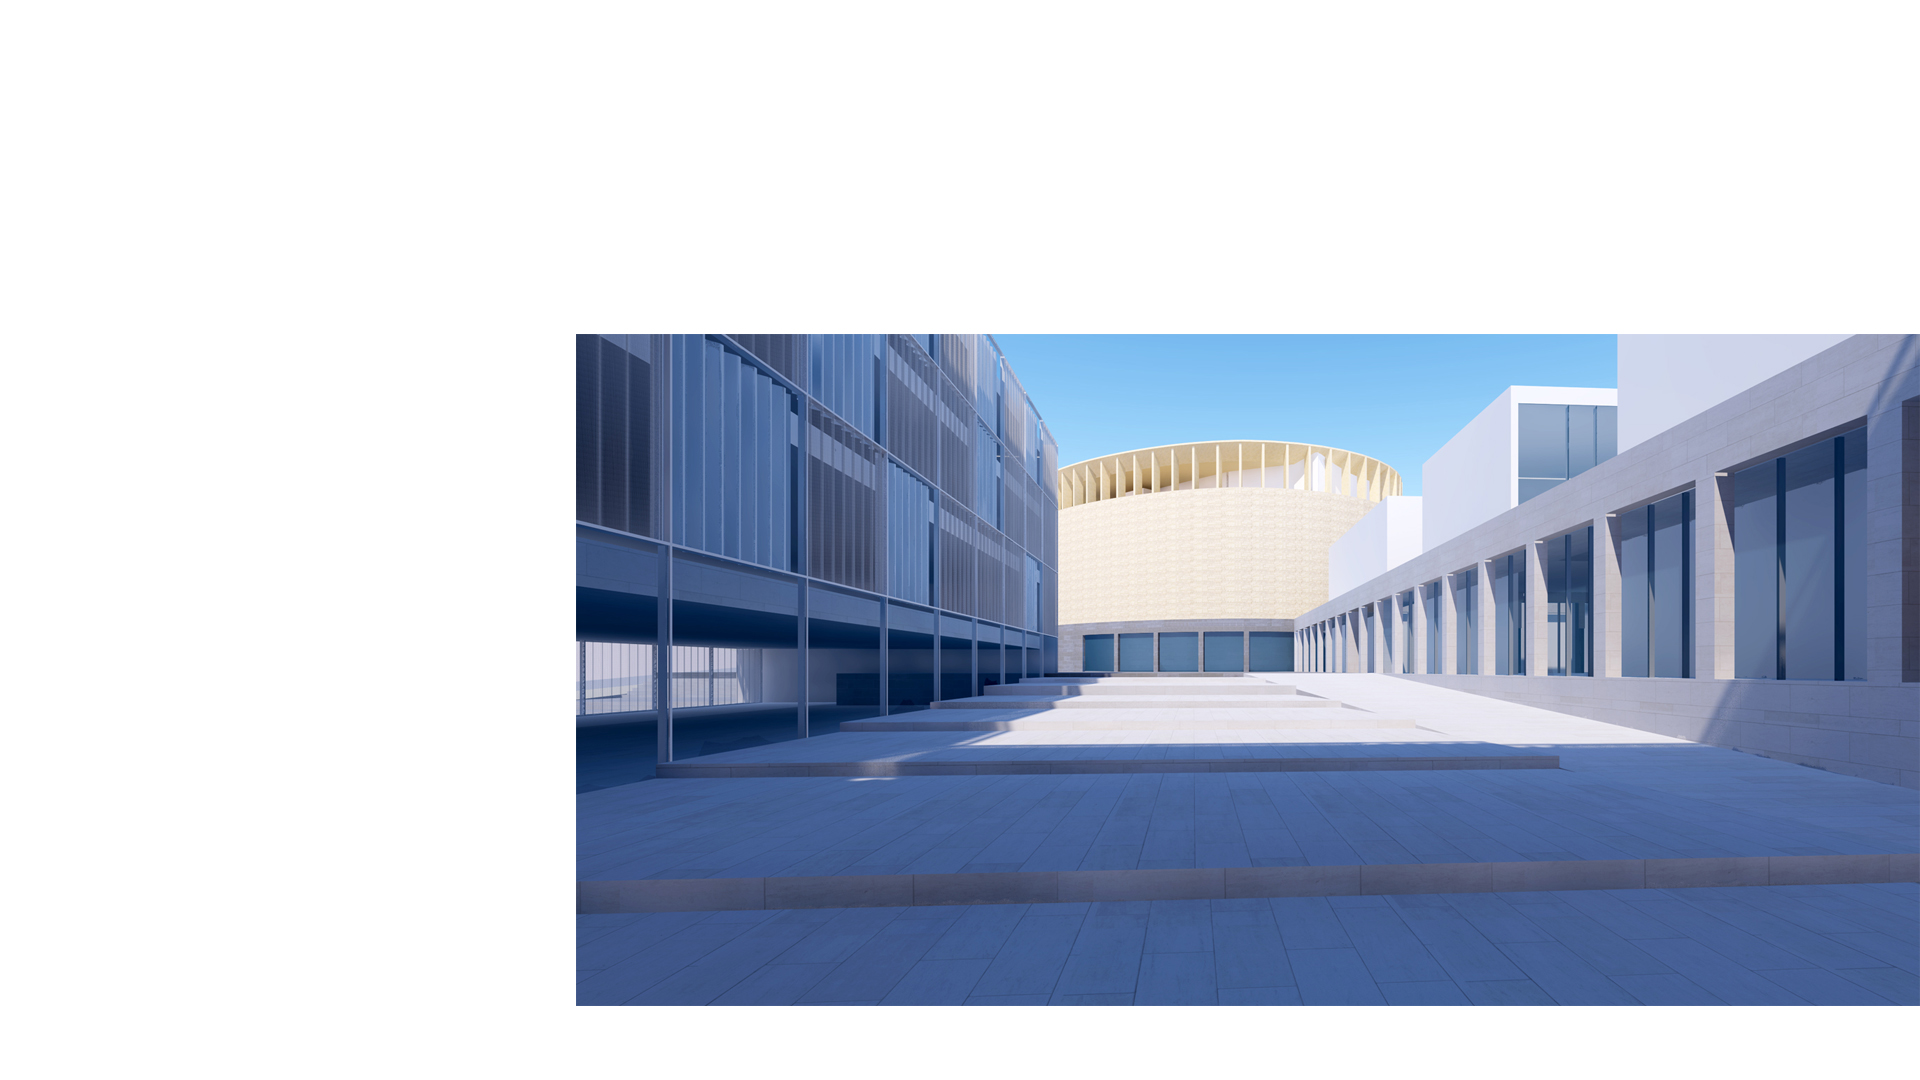 3D composite render of the proposed recital hall and music school at the Kronberg Academy, seen from the new courtyard. The proposed hotel is seen too the left.